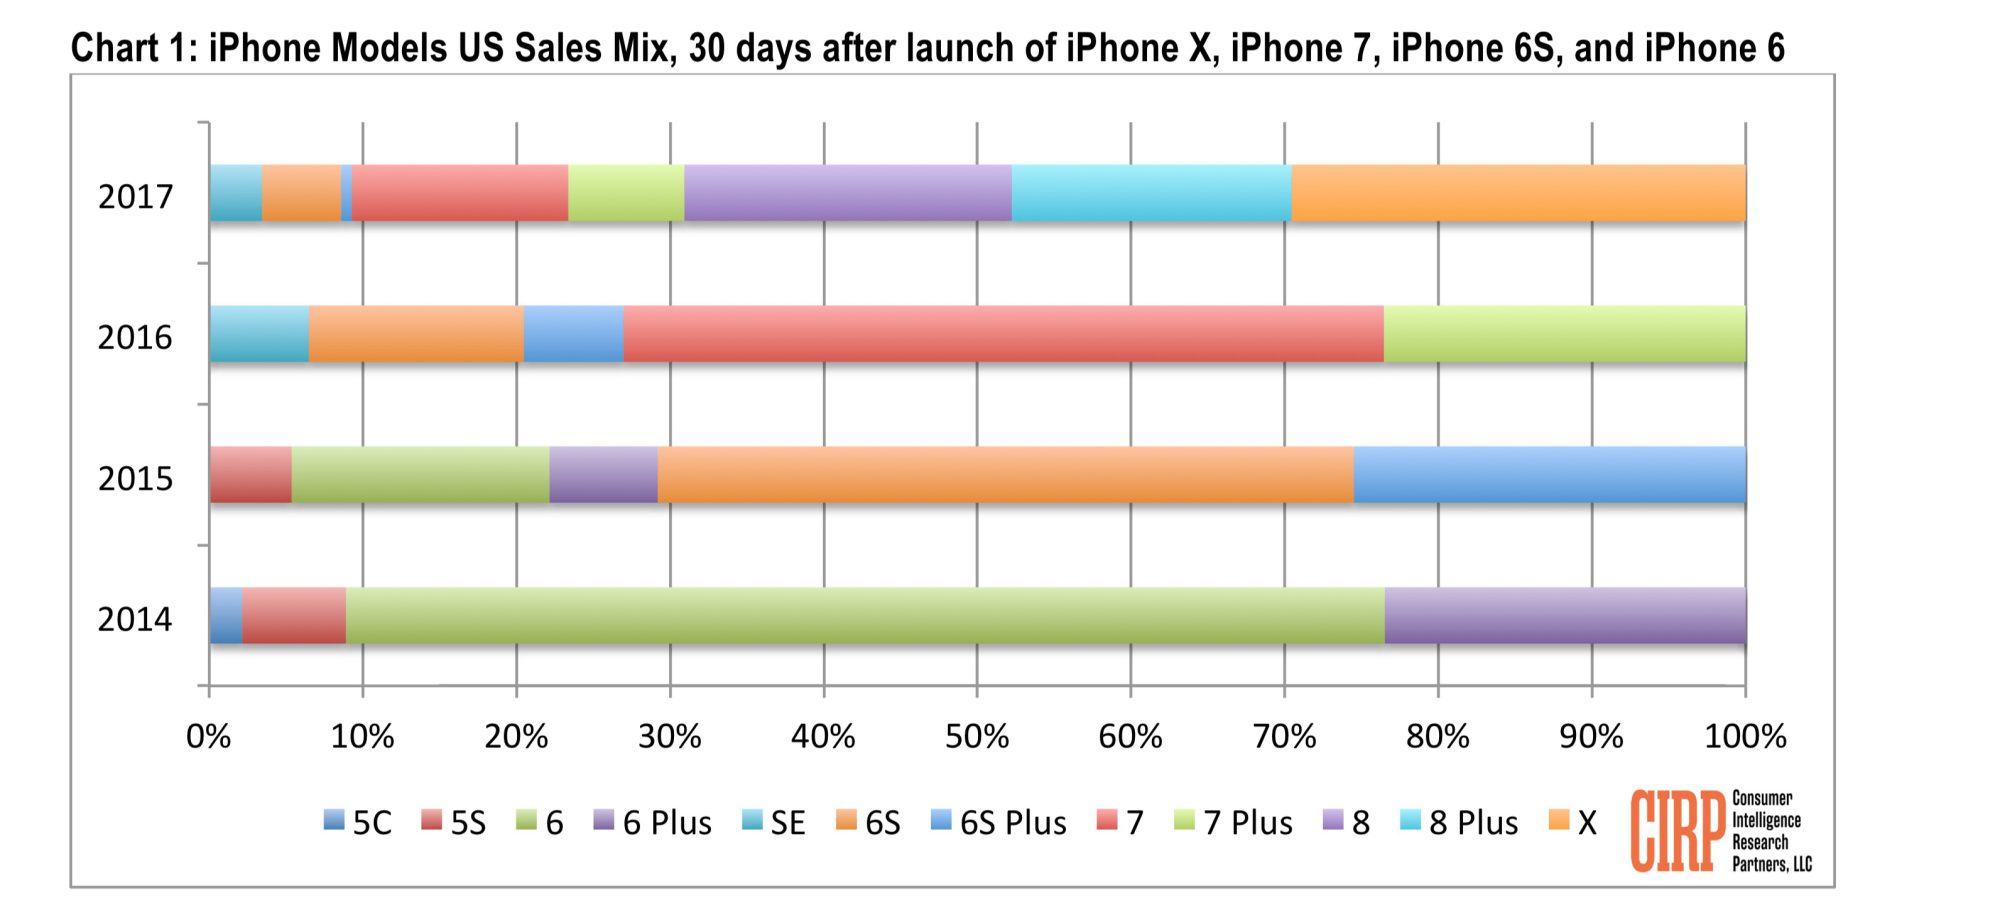 Sales distribution of different iPhone models